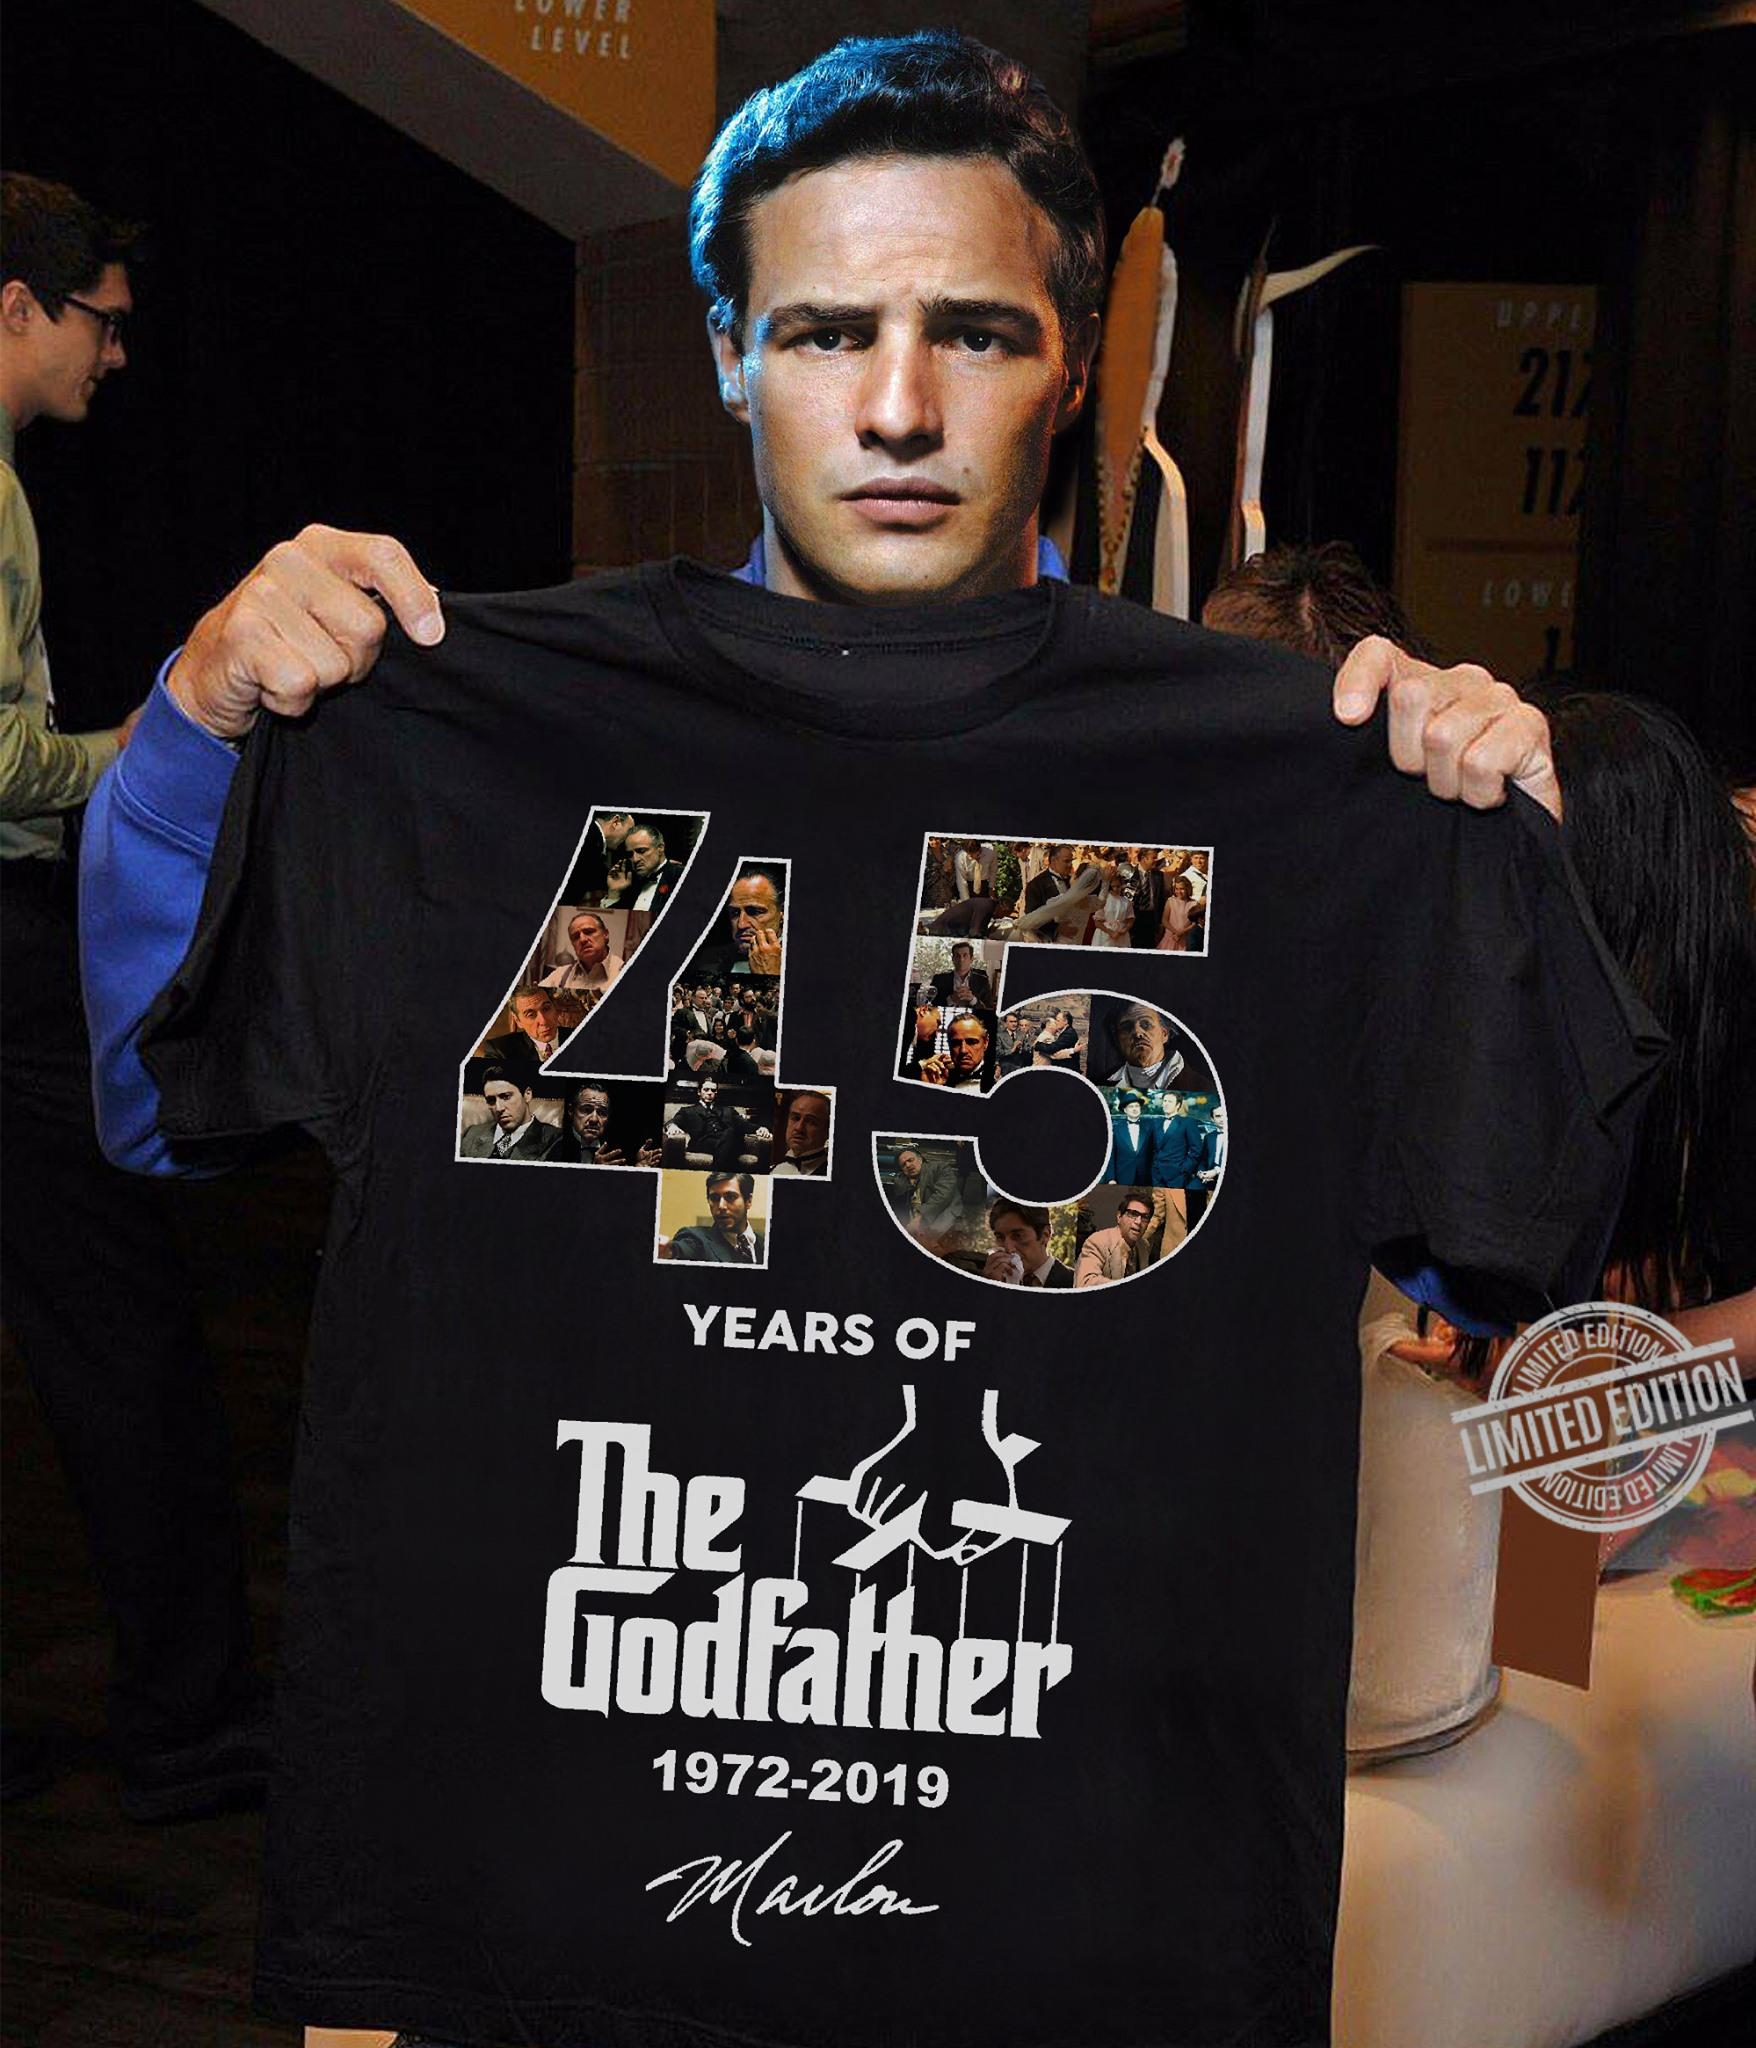 45 Years Of The Godfather Signature Shirt